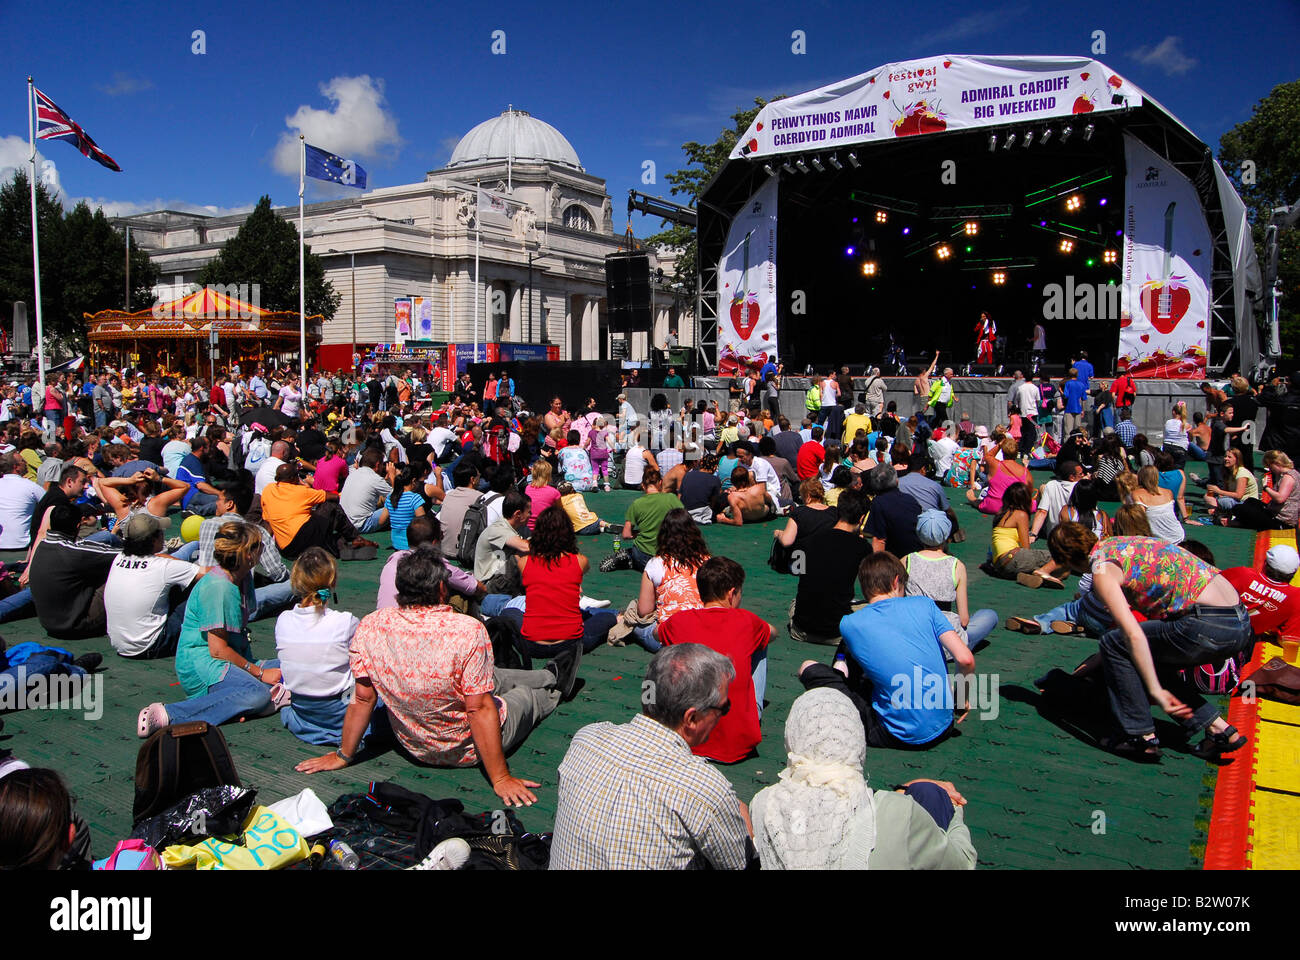 Cardiff Big Weekend Music Festival and Fun Fayre - Stock Image